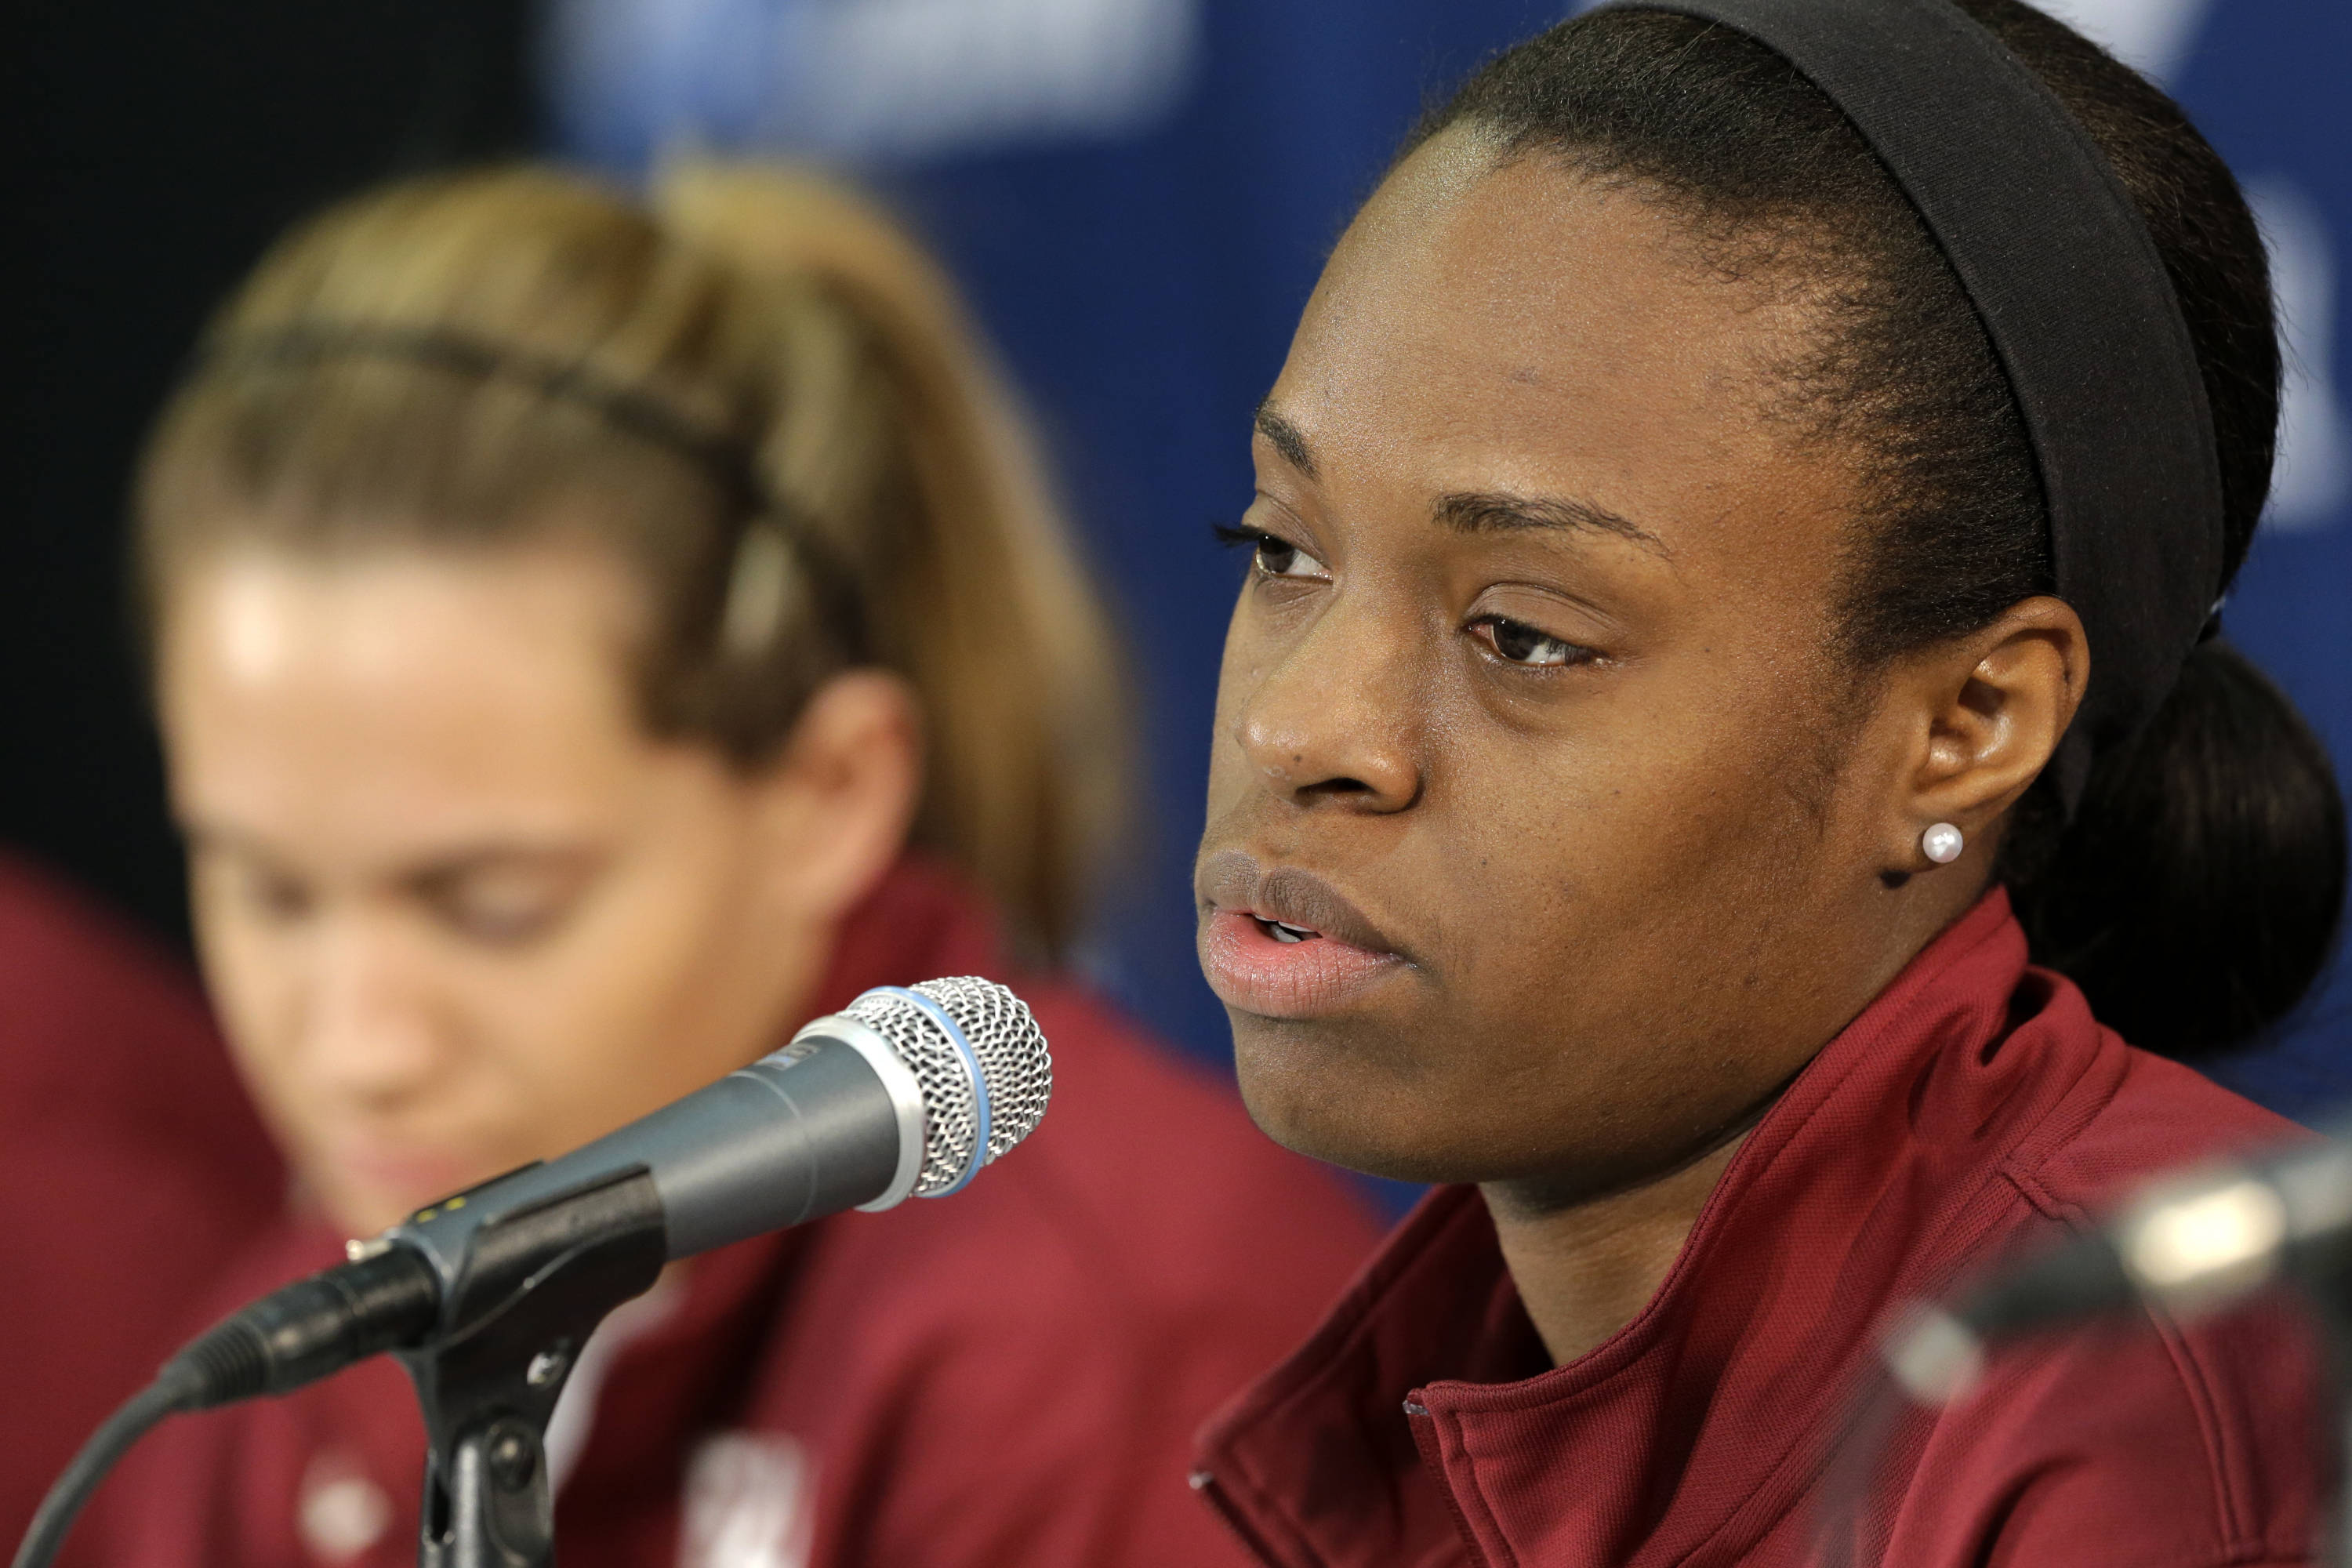 Florida State's Morgan Toles responds to a reporters question during a press conference at the women's NCAA college basketball tournament Monday, March 25, 2013, in Waco, Texas. FSU is scheduled to play Baylor on Tuesday. (AP Photo/Tony Gutierrez)